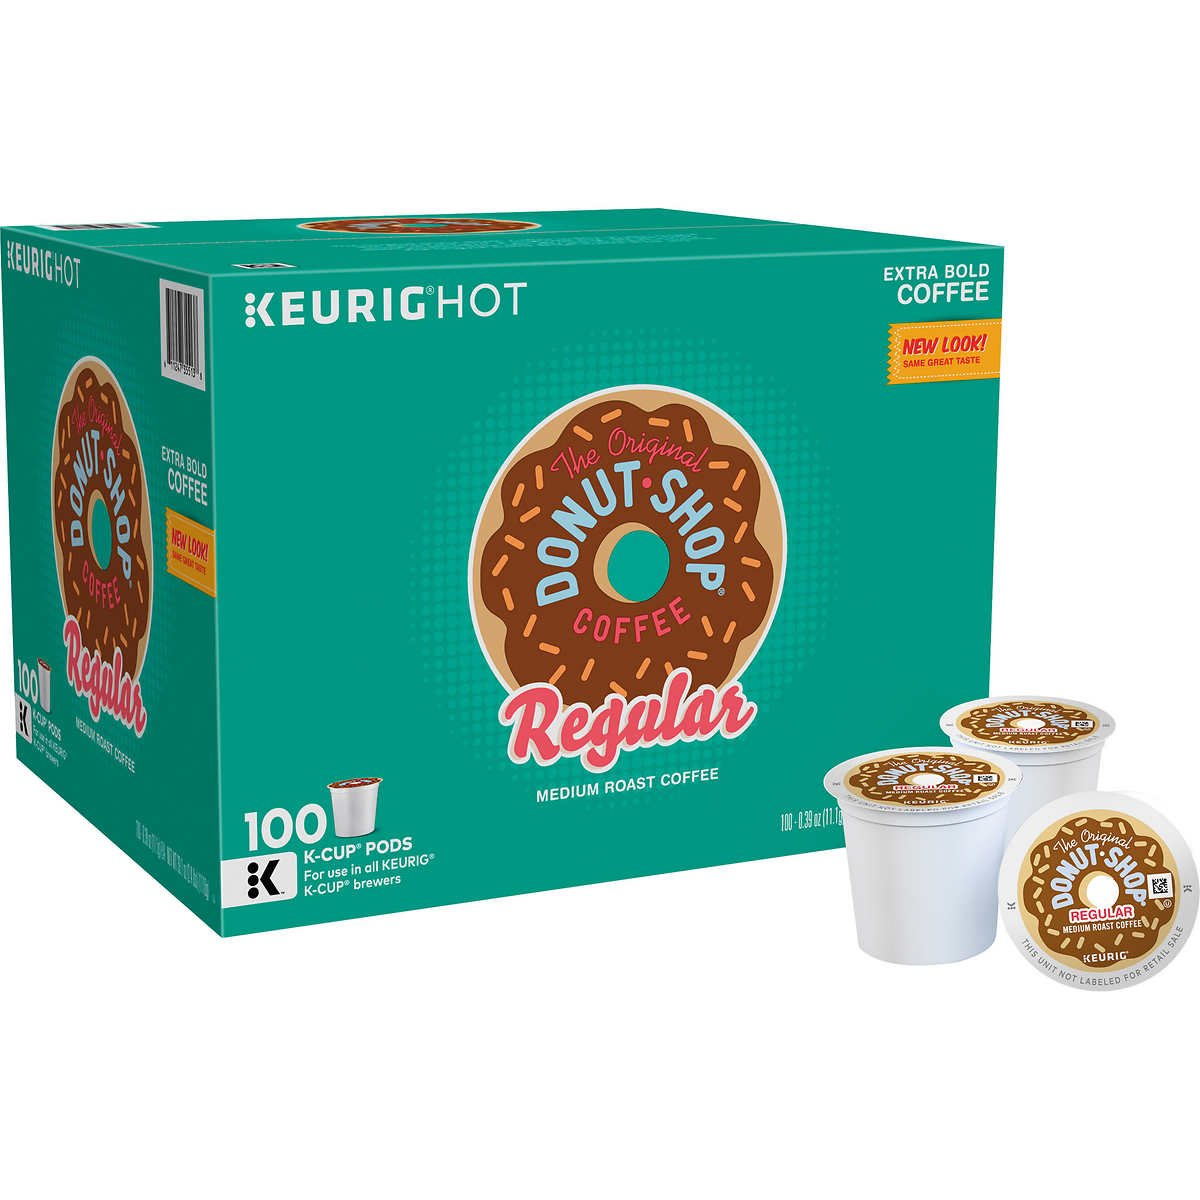 The Original Donut Shop Coffee, Medium, 100 K-Cup Pods by Donut Shop Classics